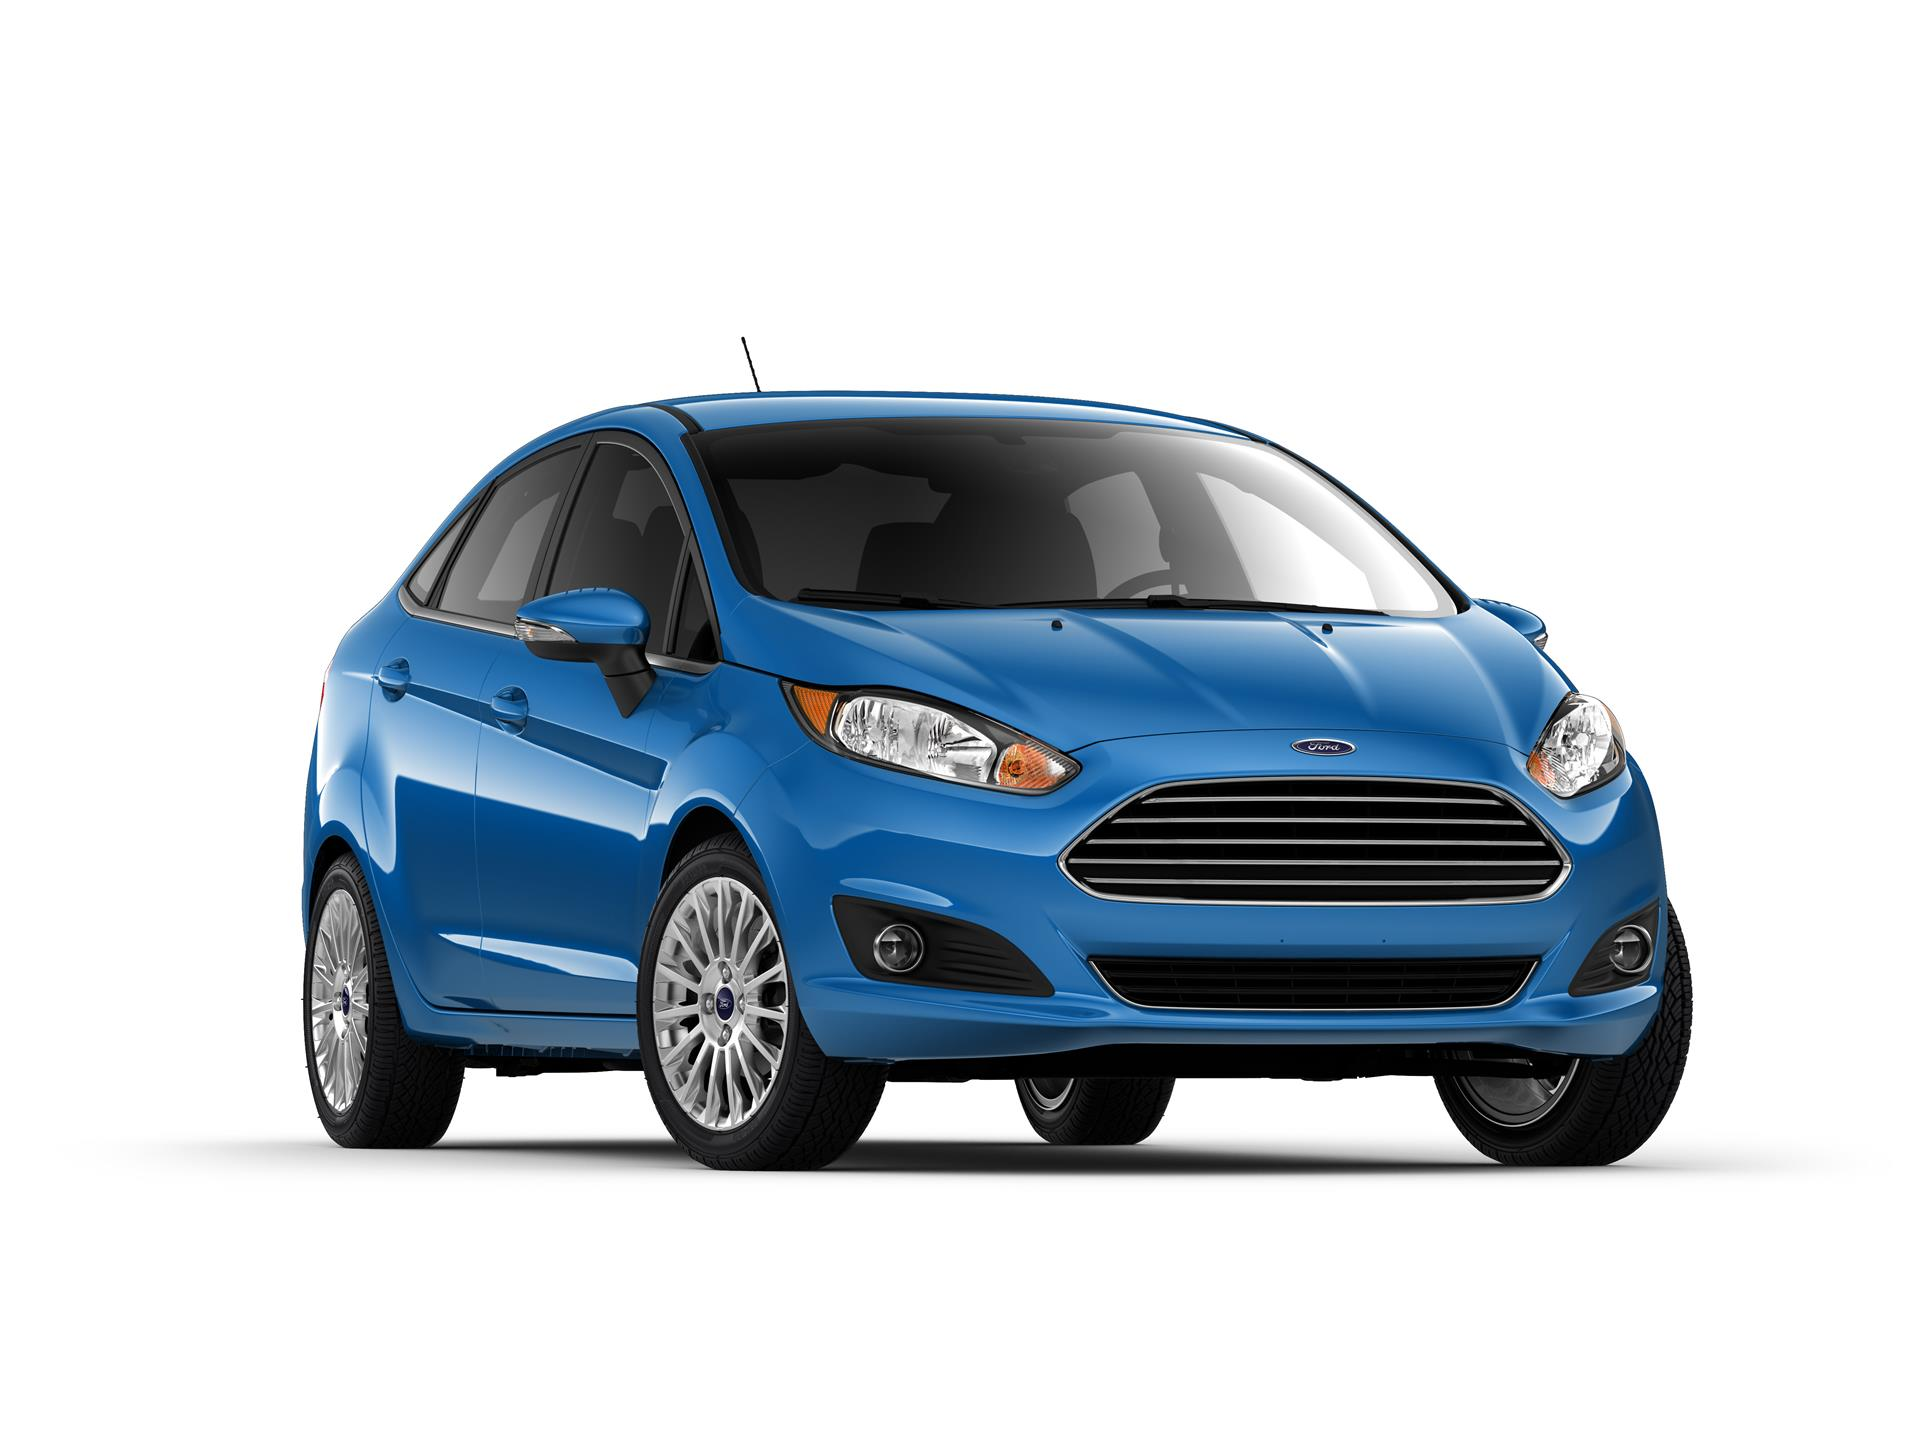 2015 ford fiesta news and information. Black Bedroom Furniture Sets. Home Design Ideas